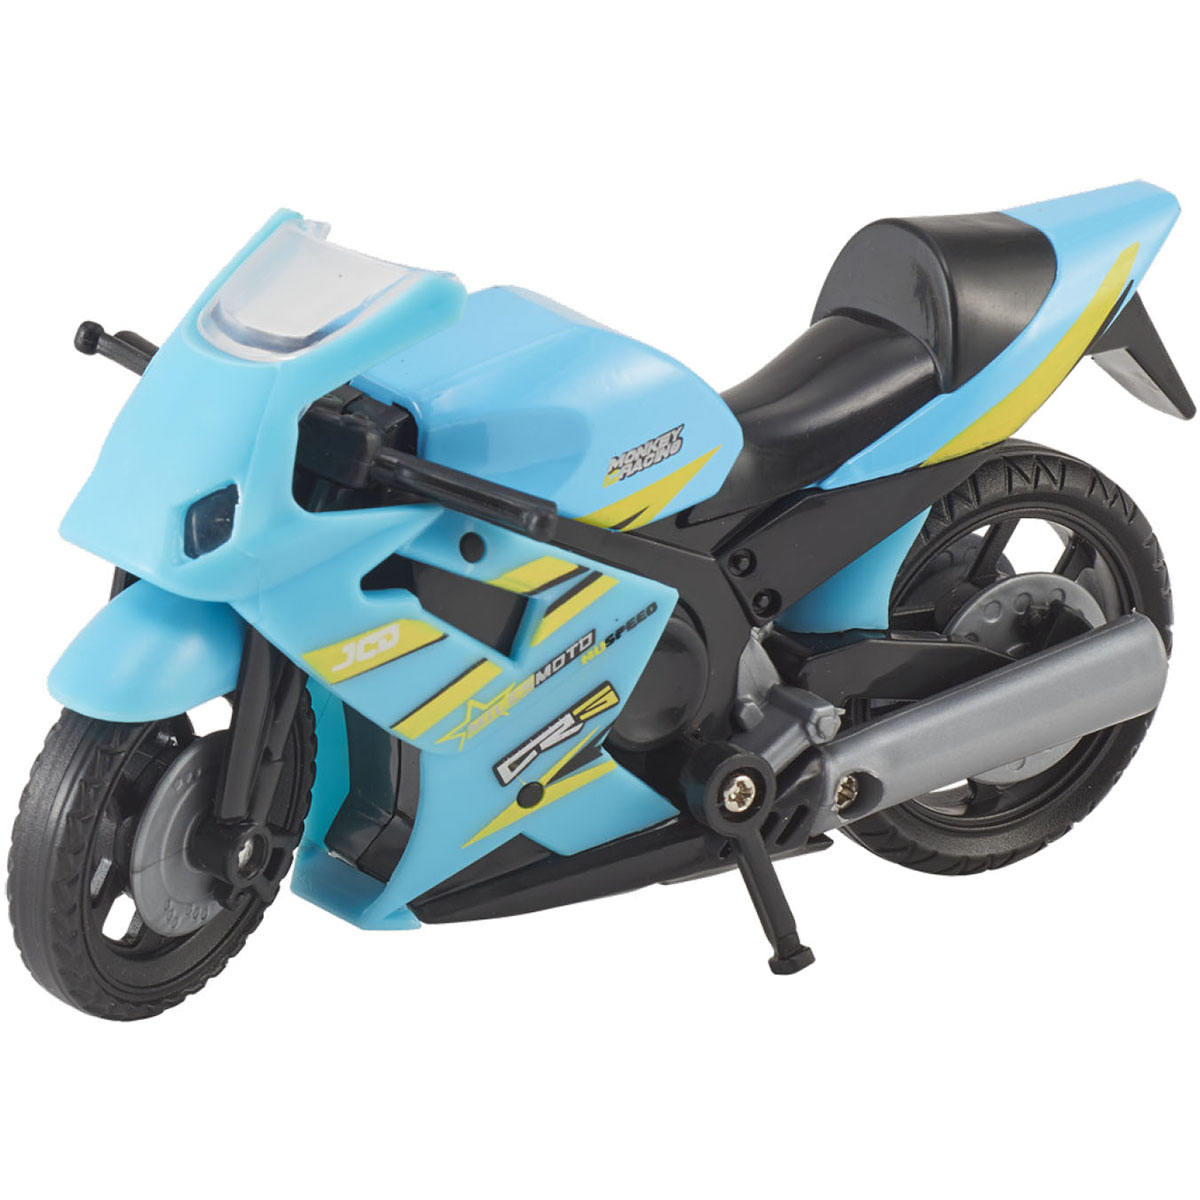 Motocicleta Teamsterz Speed Bike, Albastru